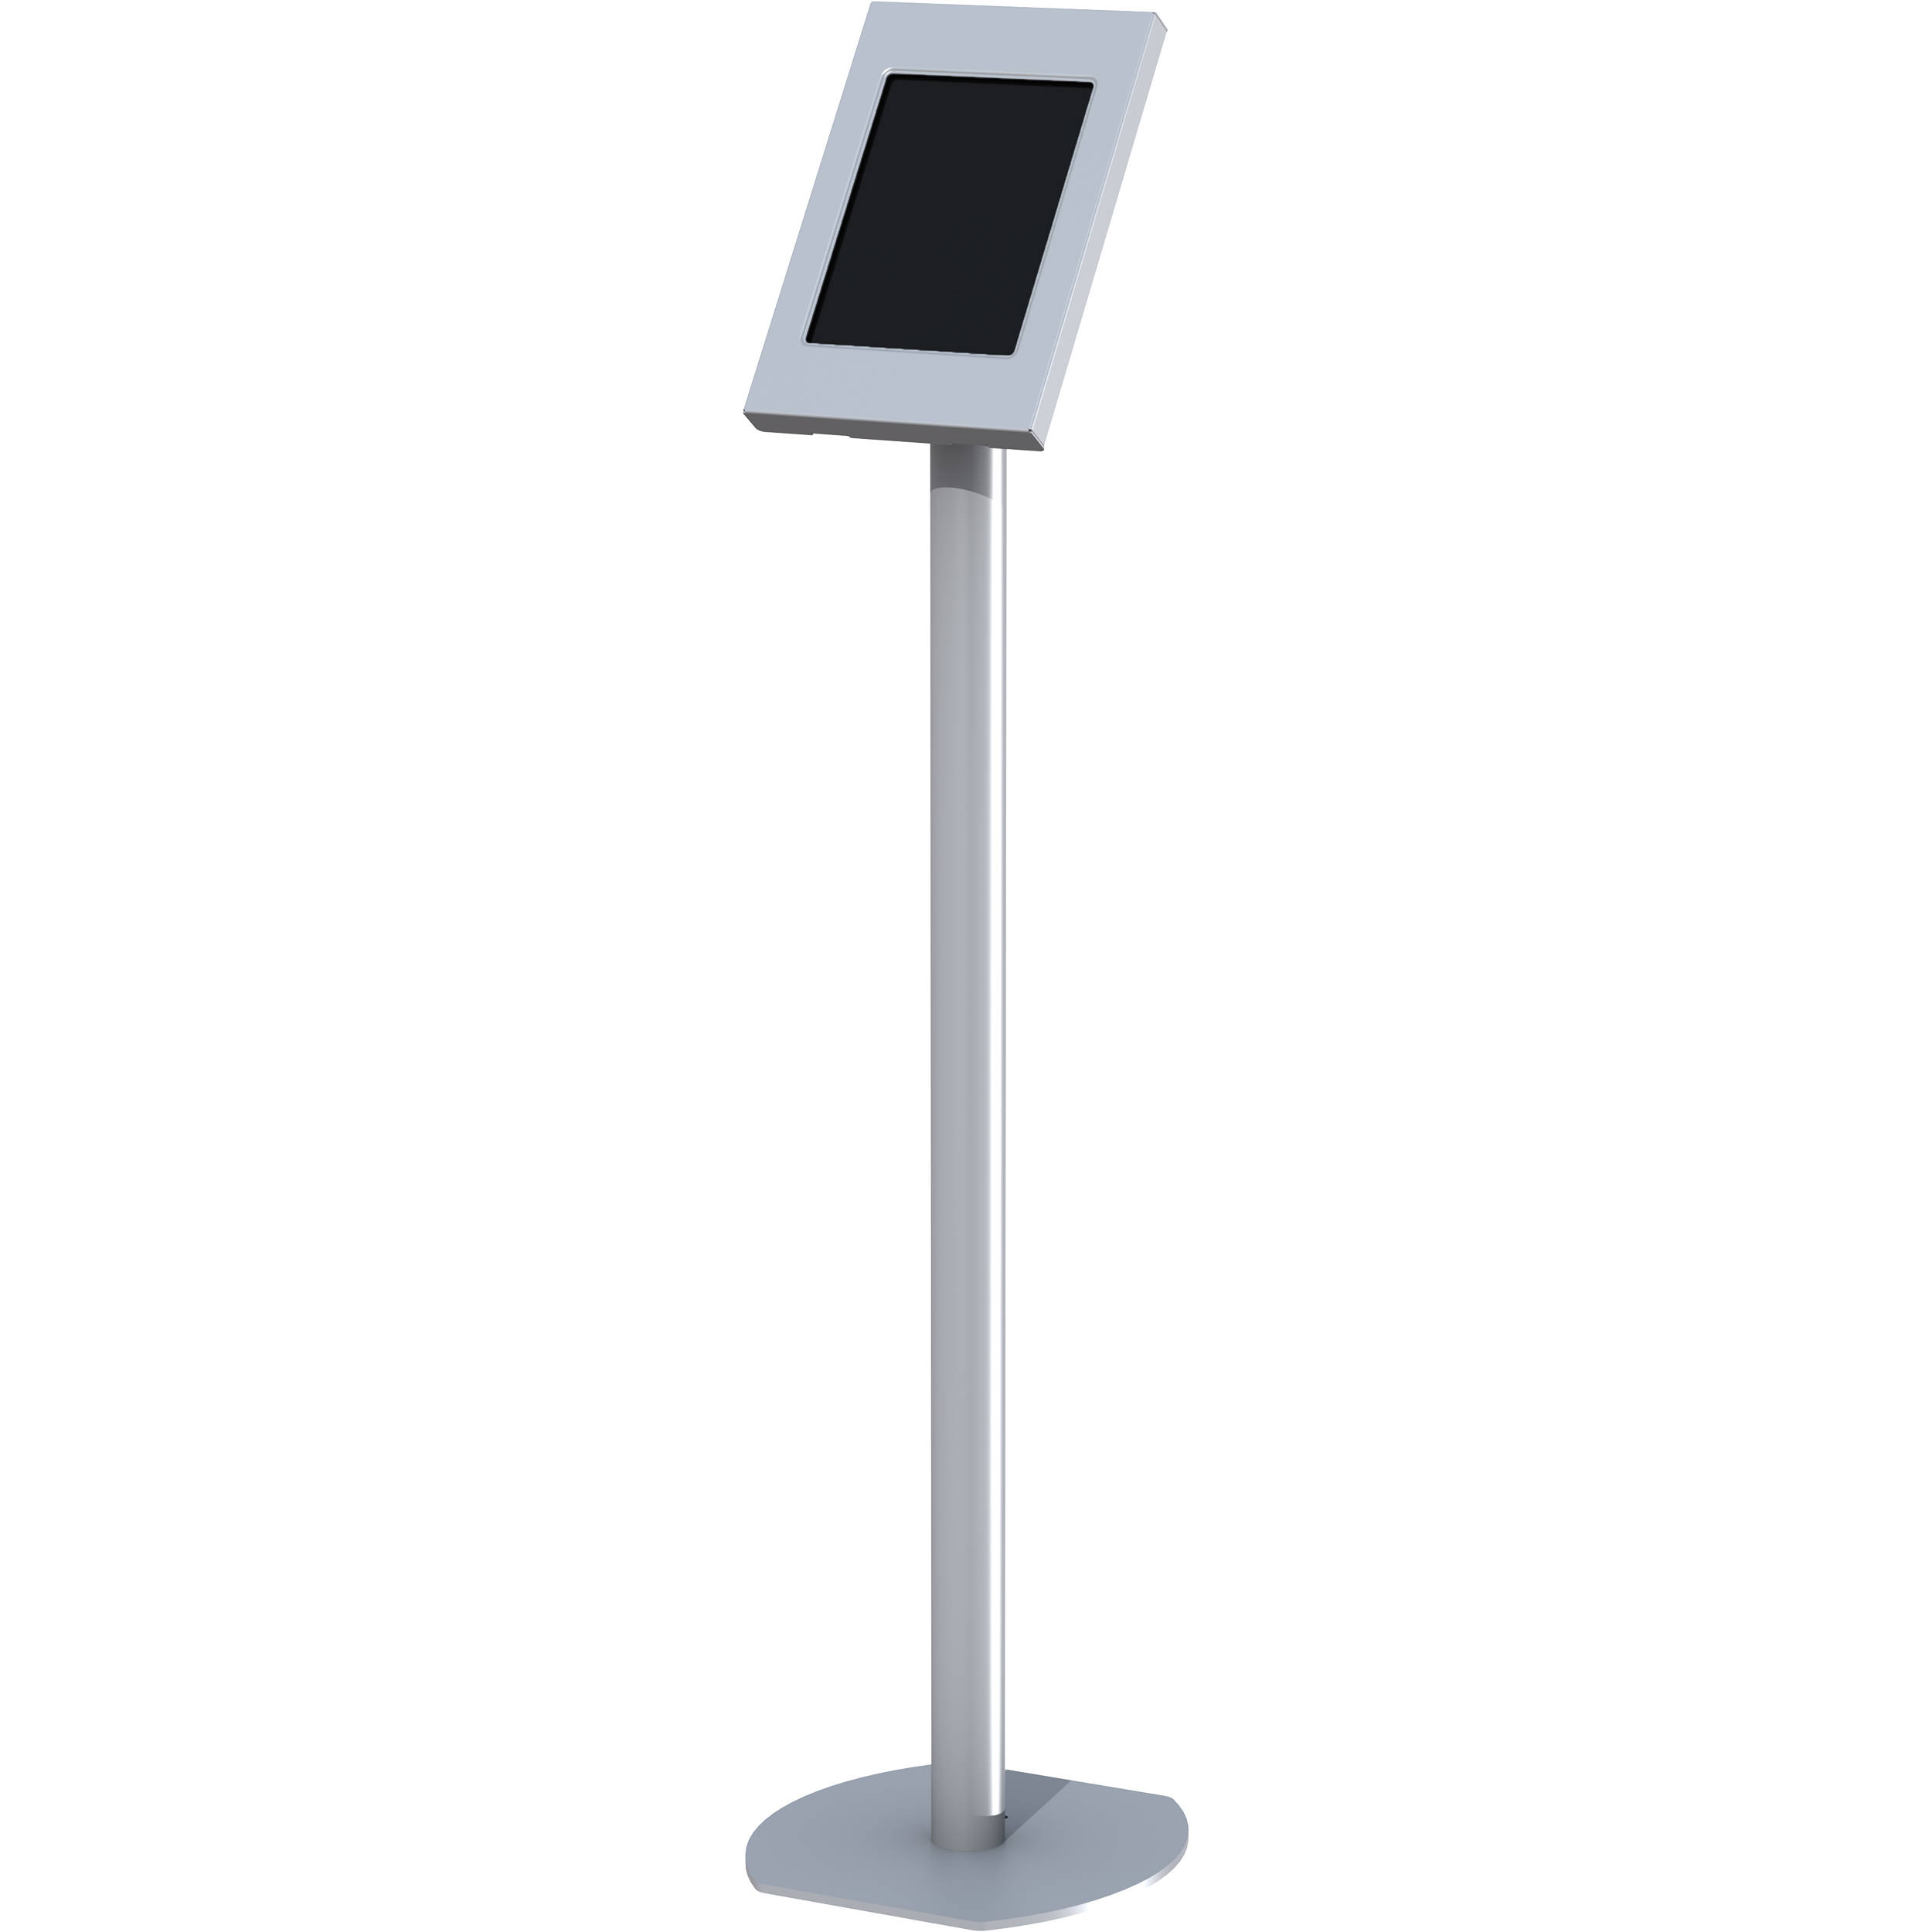 ipod ipad or iphone not included - Ipad Floor Stand